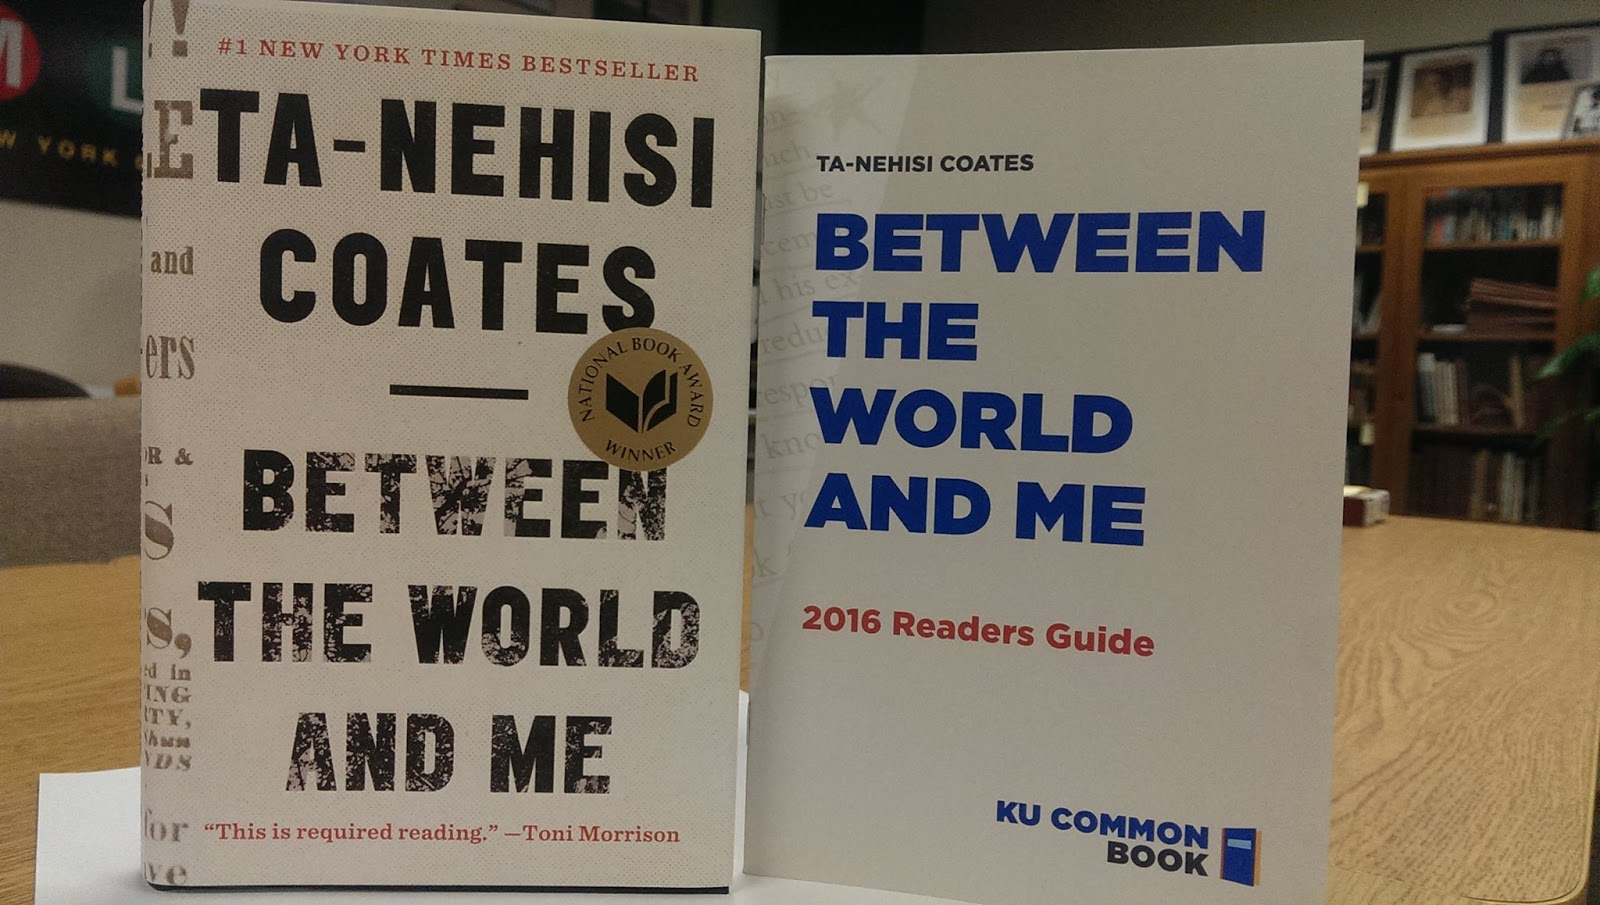 an analysis of coates book between the world and me Ta-nehisi coates describes several significant settings in his book between the world and me (on which you can find a full analysis in the enotes study guide)first is baltimore, maryland.